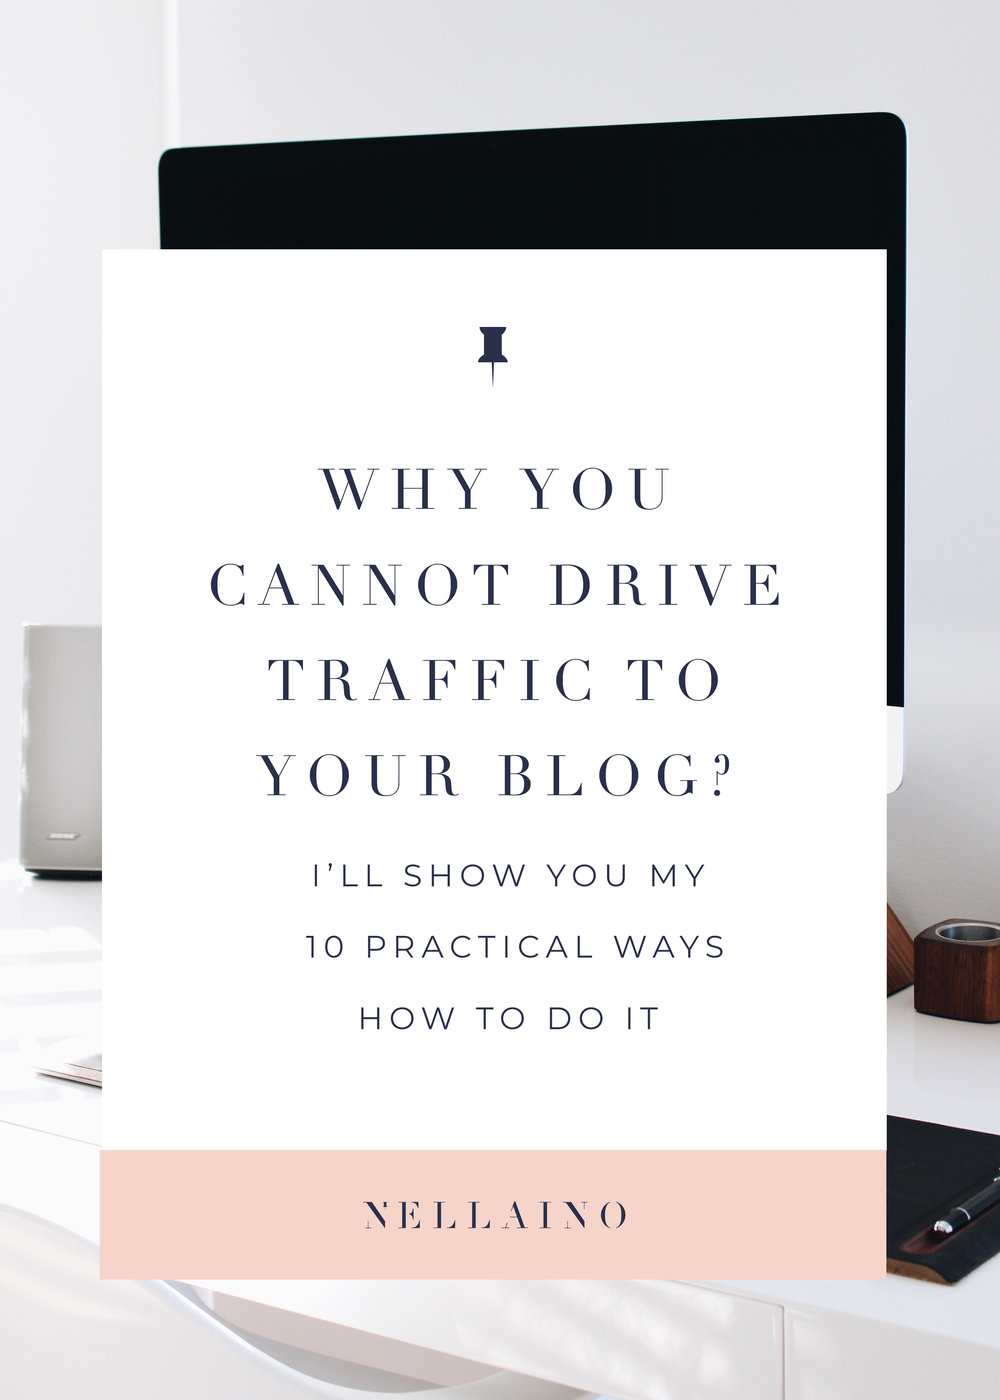 How-to-drive-traffic-to-your-blog-by-Nellaino.jpg